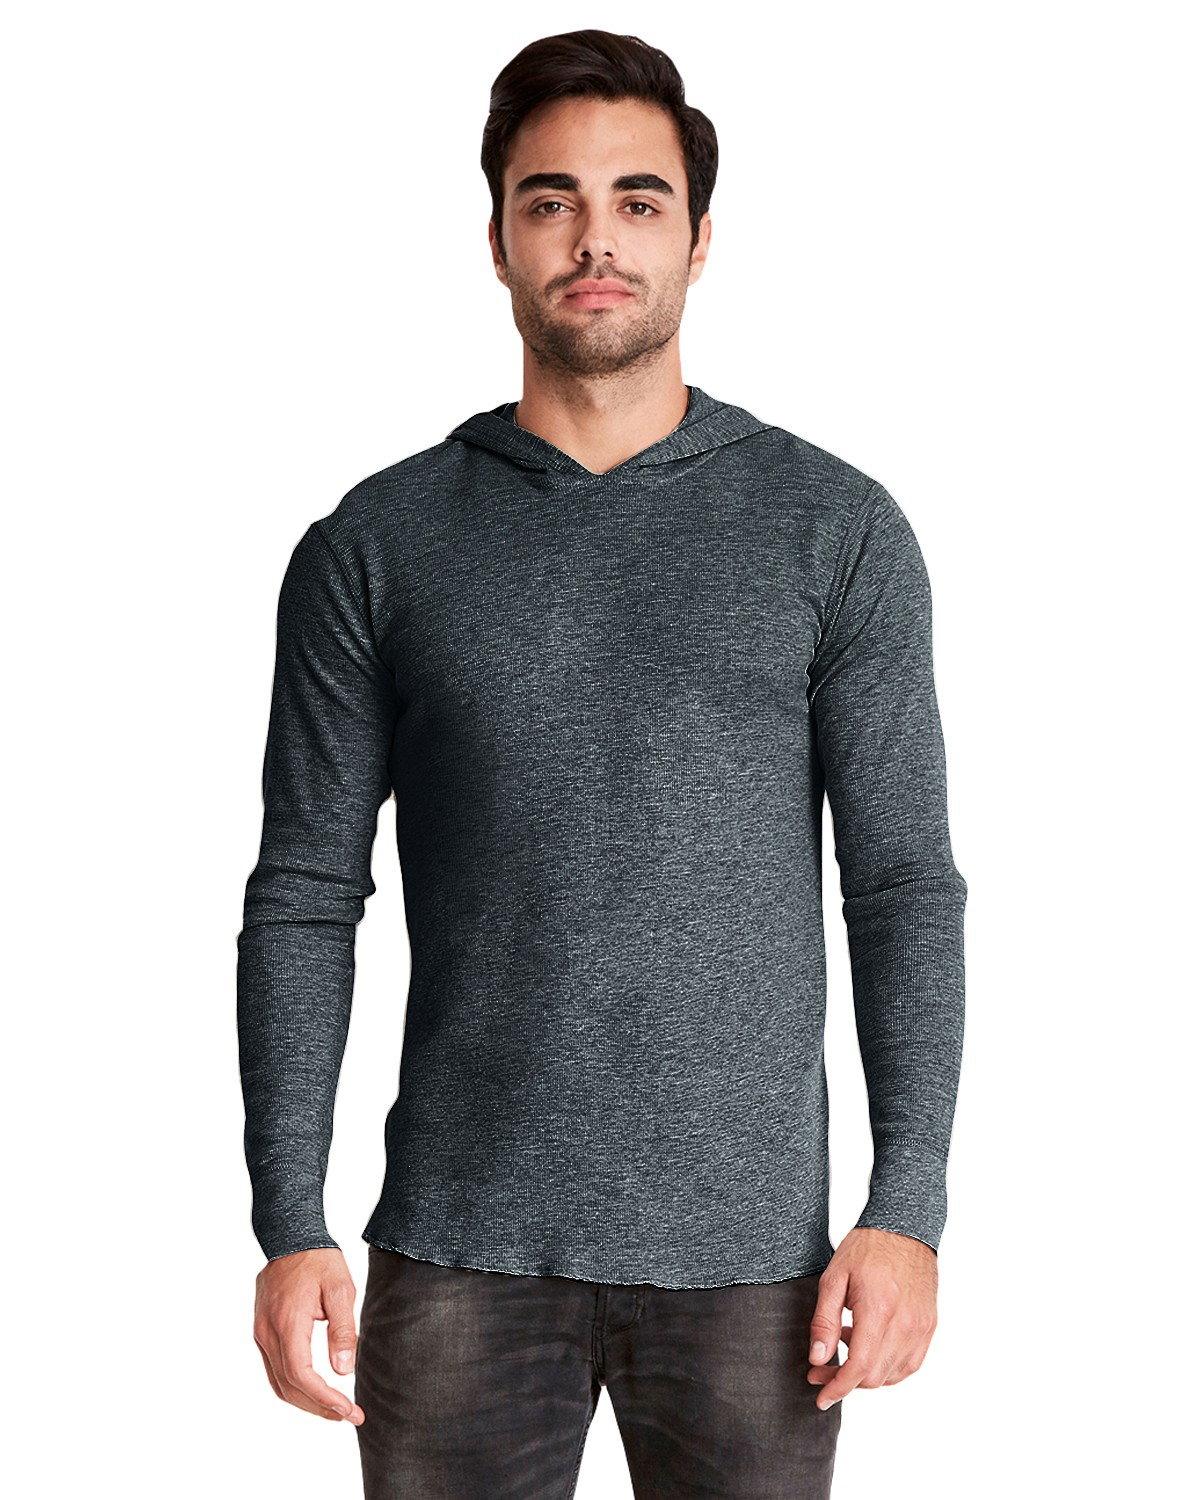 8221 Next Level HEATHER CHARCOAL